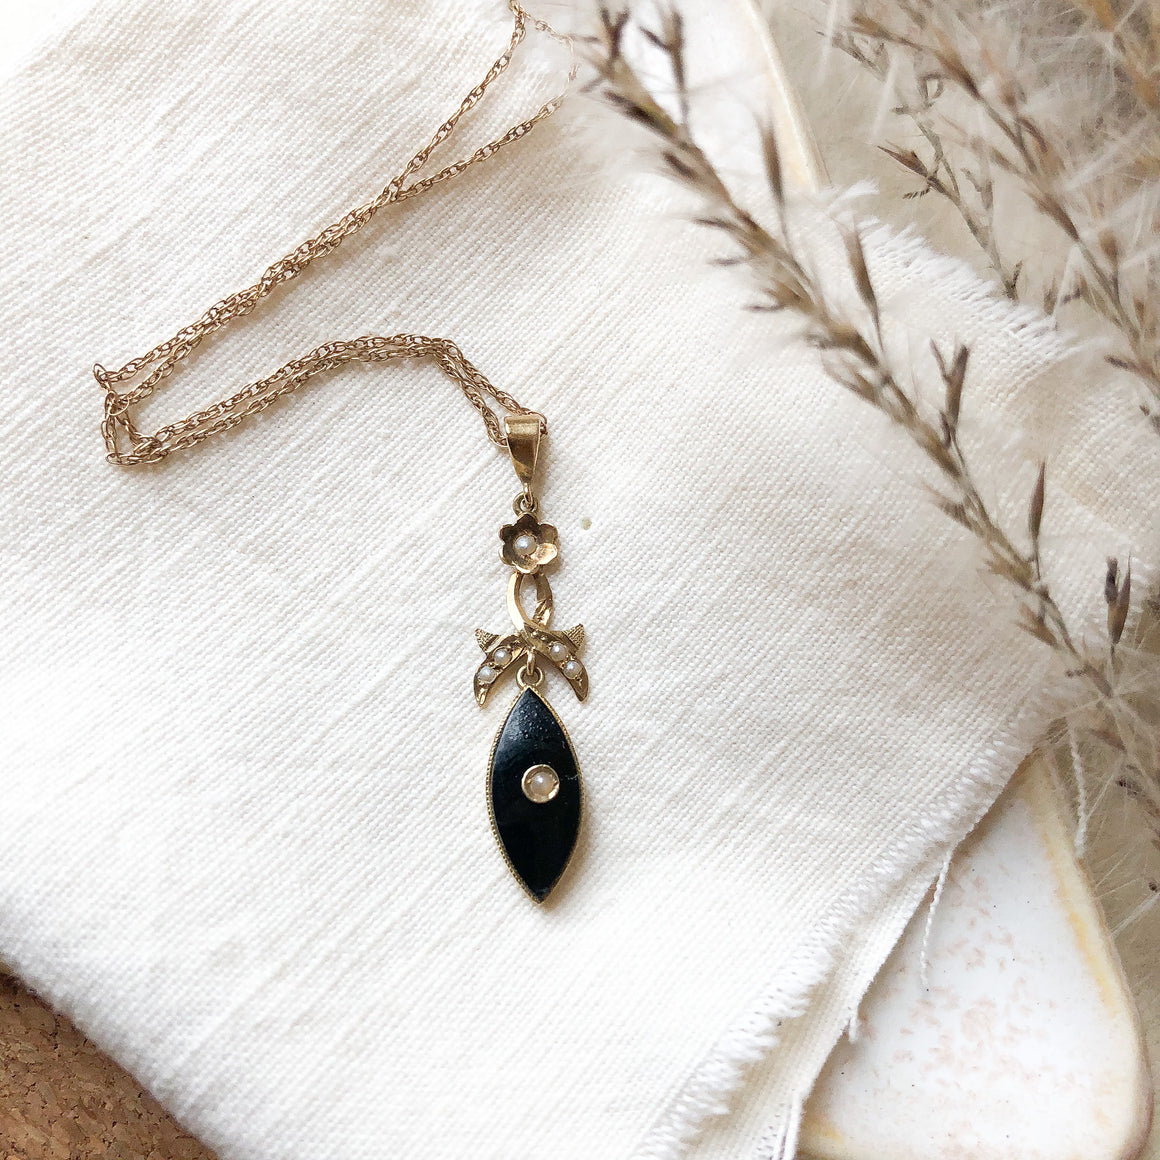 10k onyx and seed pearl pendant